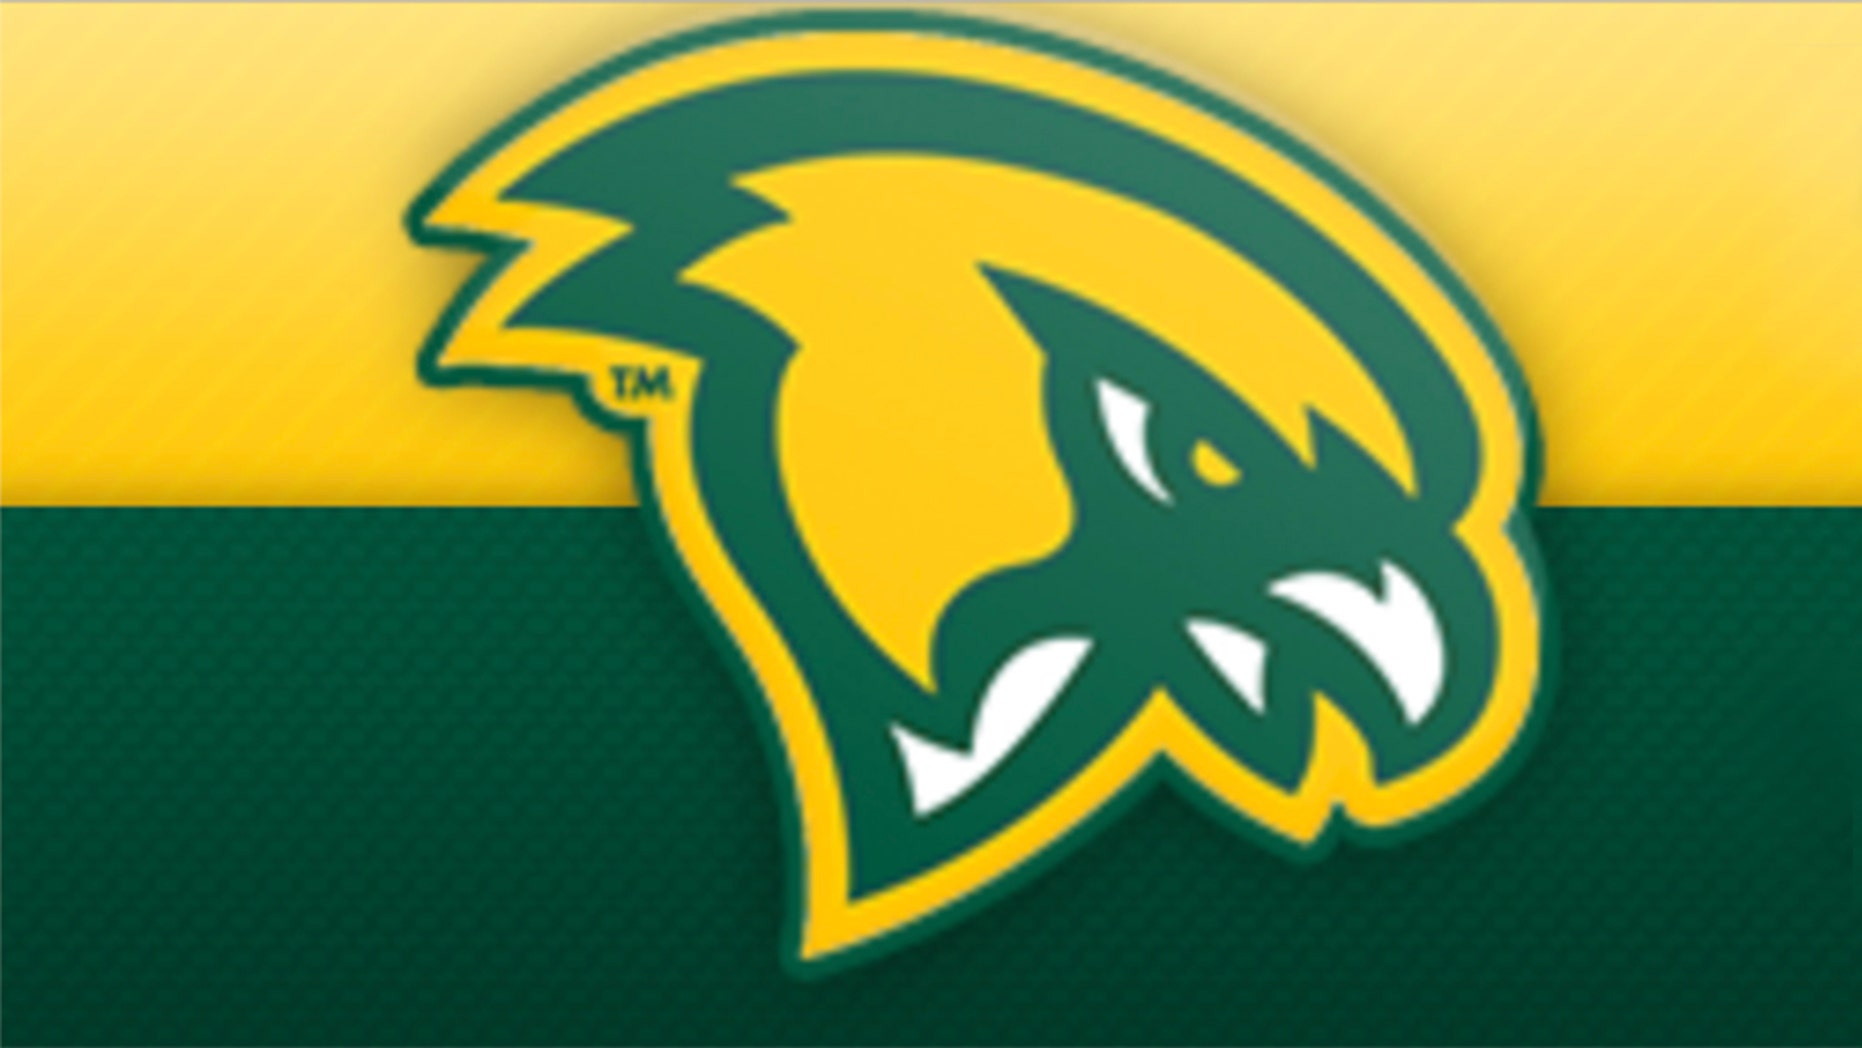 A Fitchburg State University player was seen elbowing an opponent from Nichols College during a game on Tuesday.